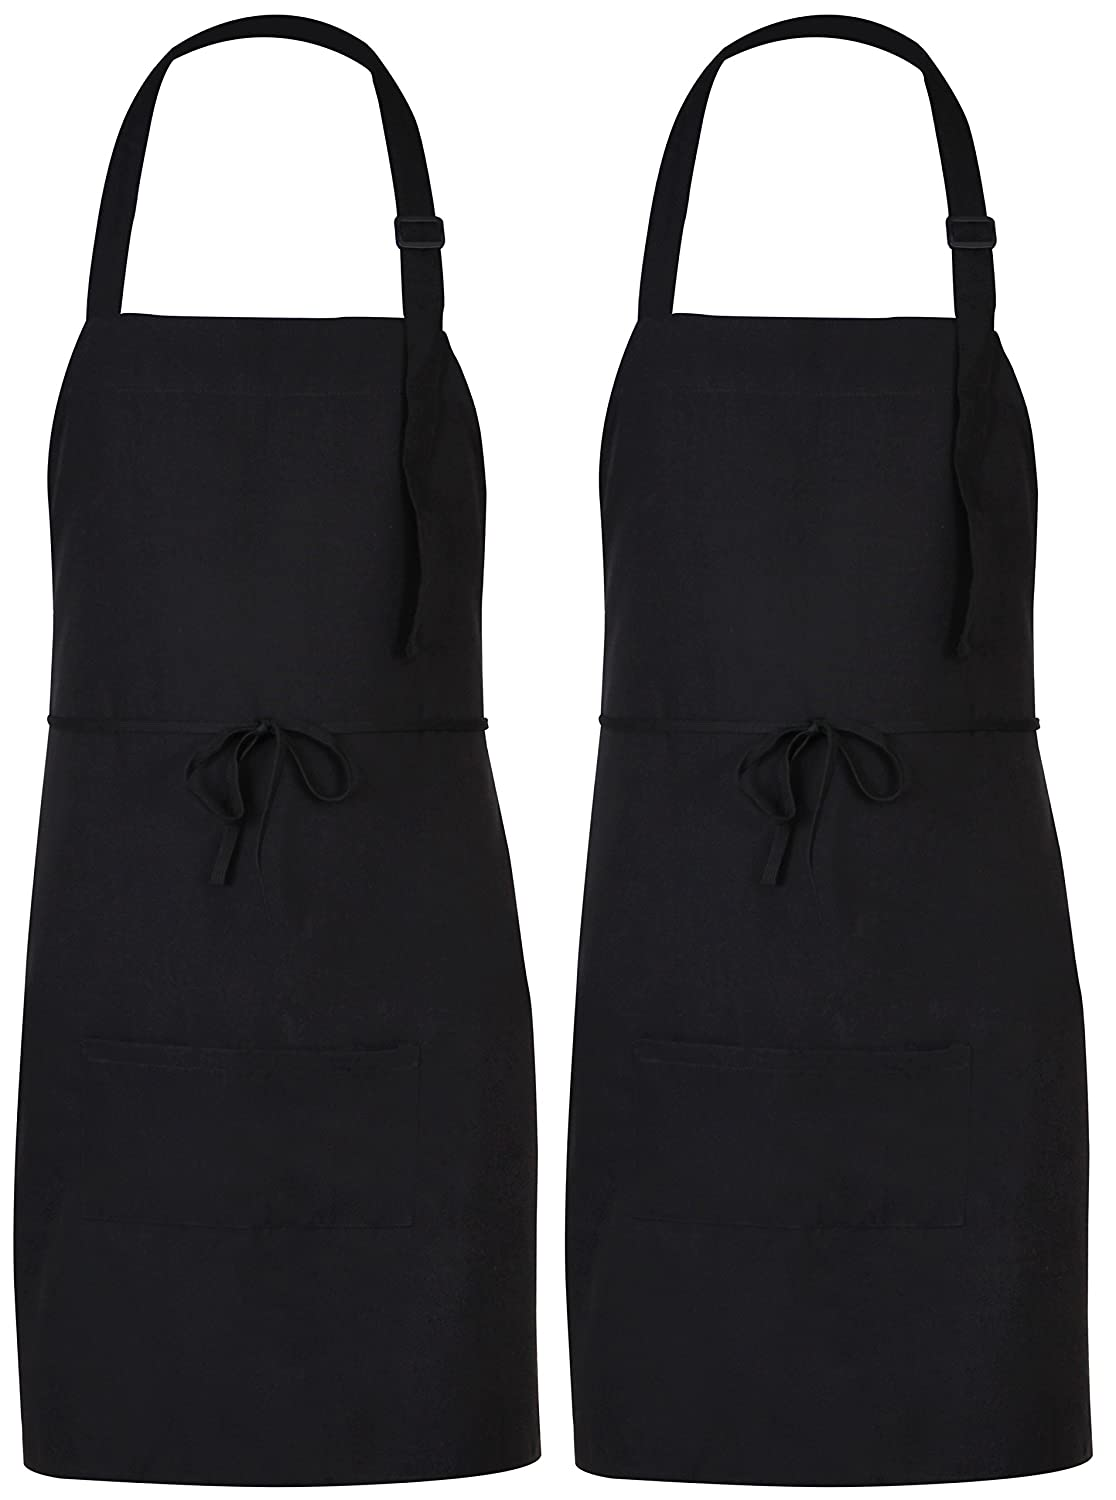 Utopia Adjustable Bib Apron with 2 Pockets - Cooking Kitchen Aprons for Women, Men, Chef - Black (2) Utopia Kitchen UK0381